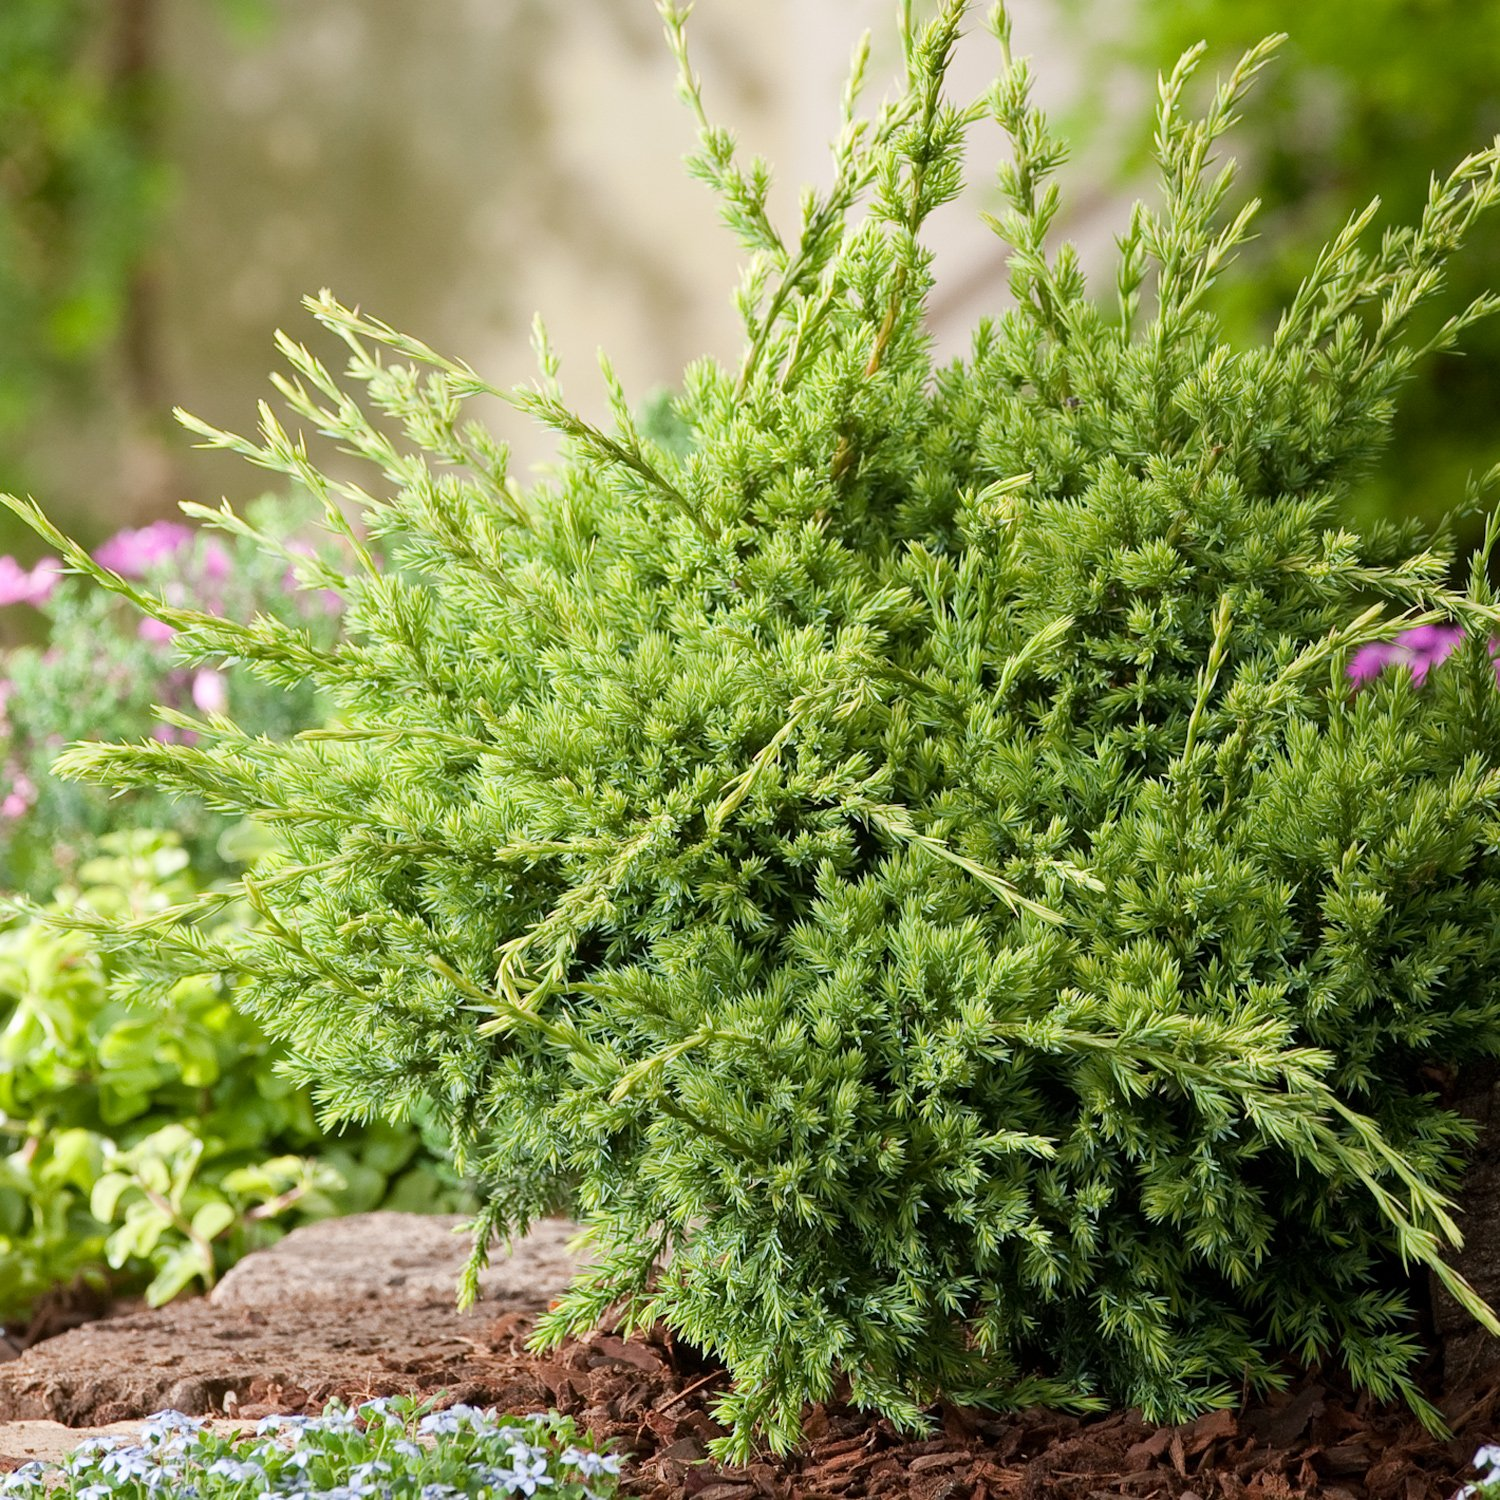 3 PACK (9cm Pots) Dwarf ConiferJuniperus Squamata Holger (Blue carpet) Ground Covering, Yellow Evergreen Foilage B&R Direct (UK) Ltd